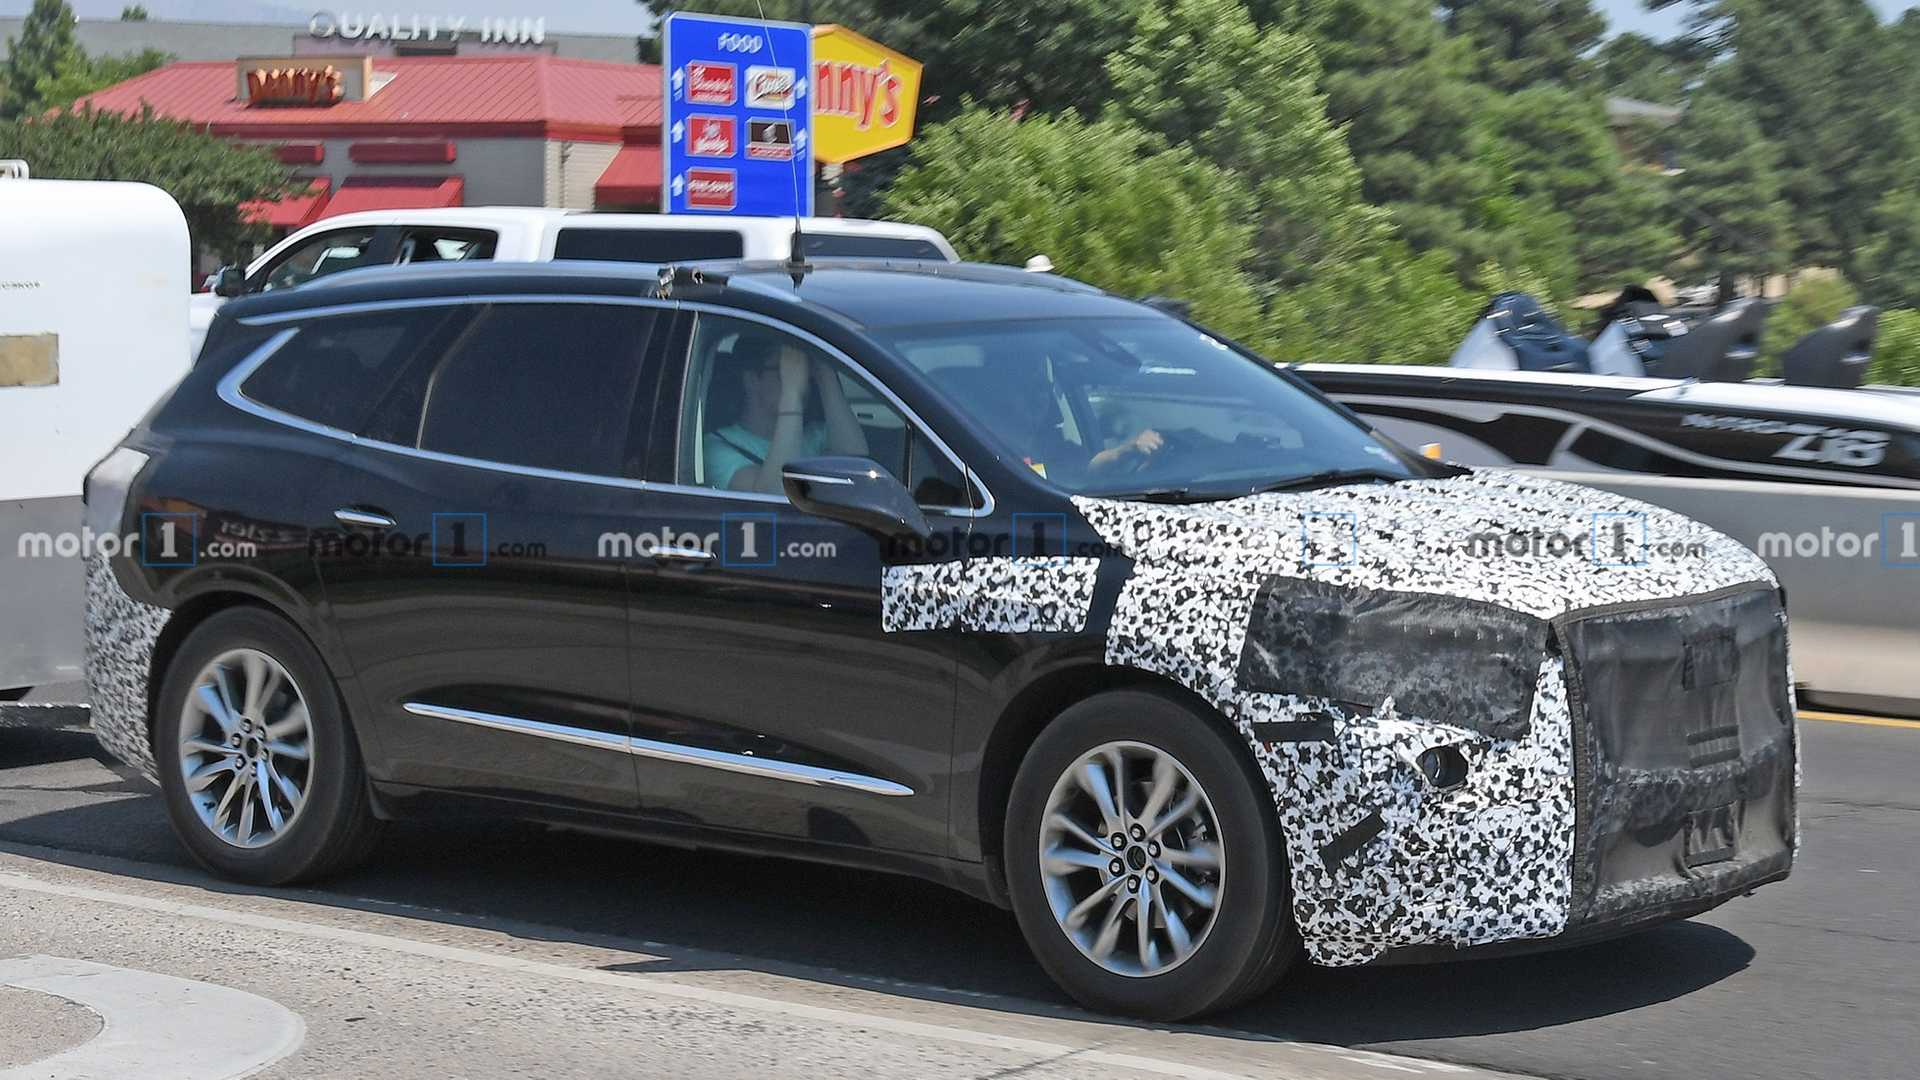 2021 Buick Enclave Spied For The First Time 2021 Buick Enclave Awd, Build, Lease